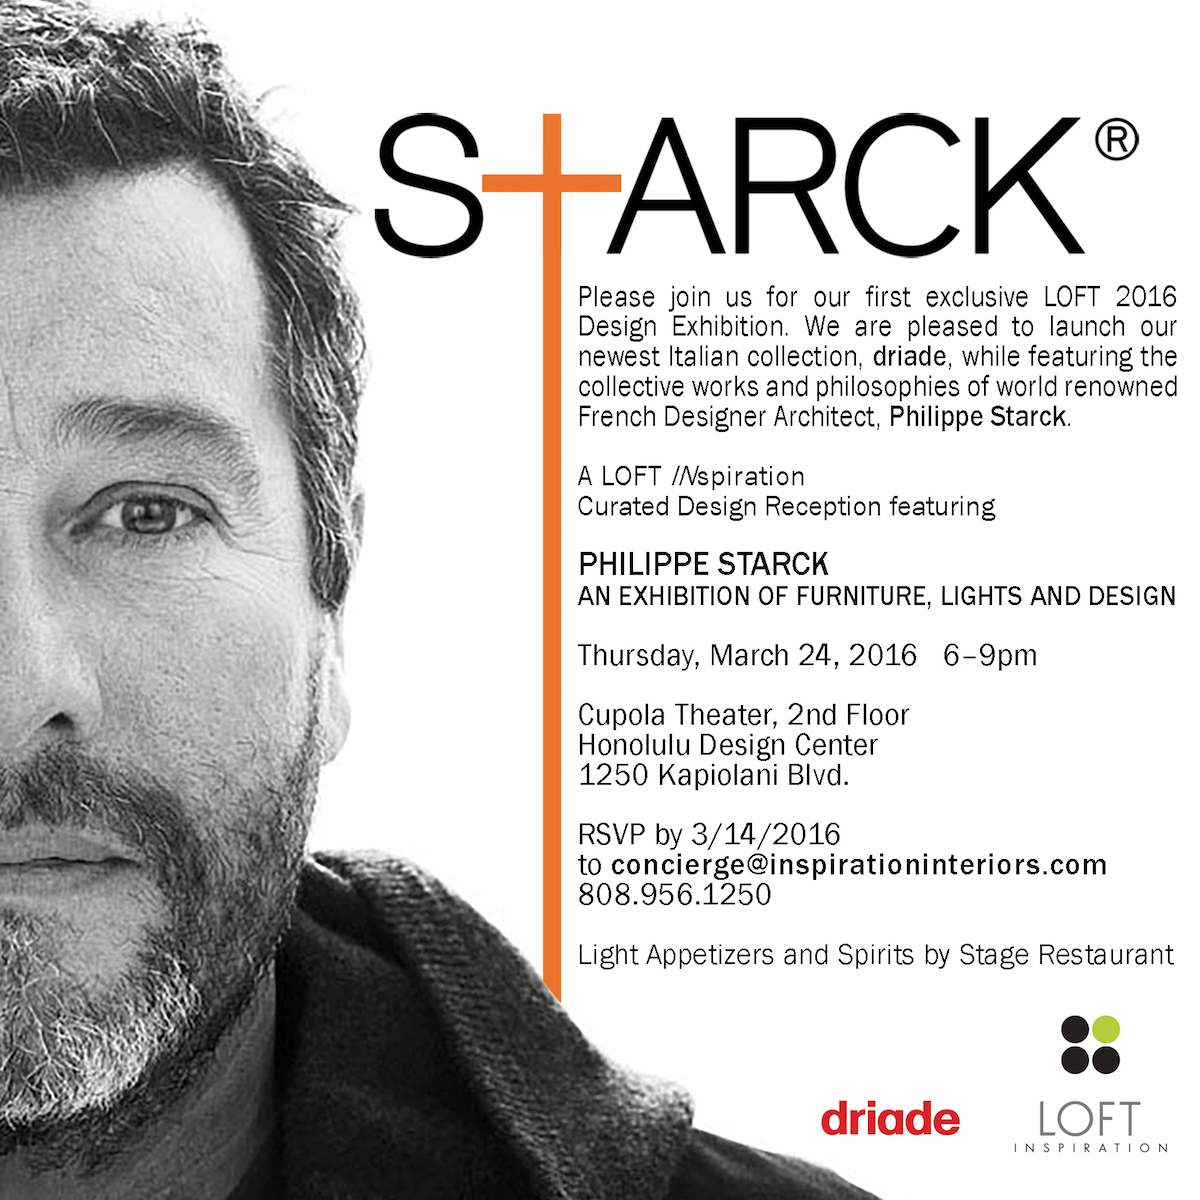 Philippe Starck Exhibition Tickets Thu Mar 24 2016 At 6